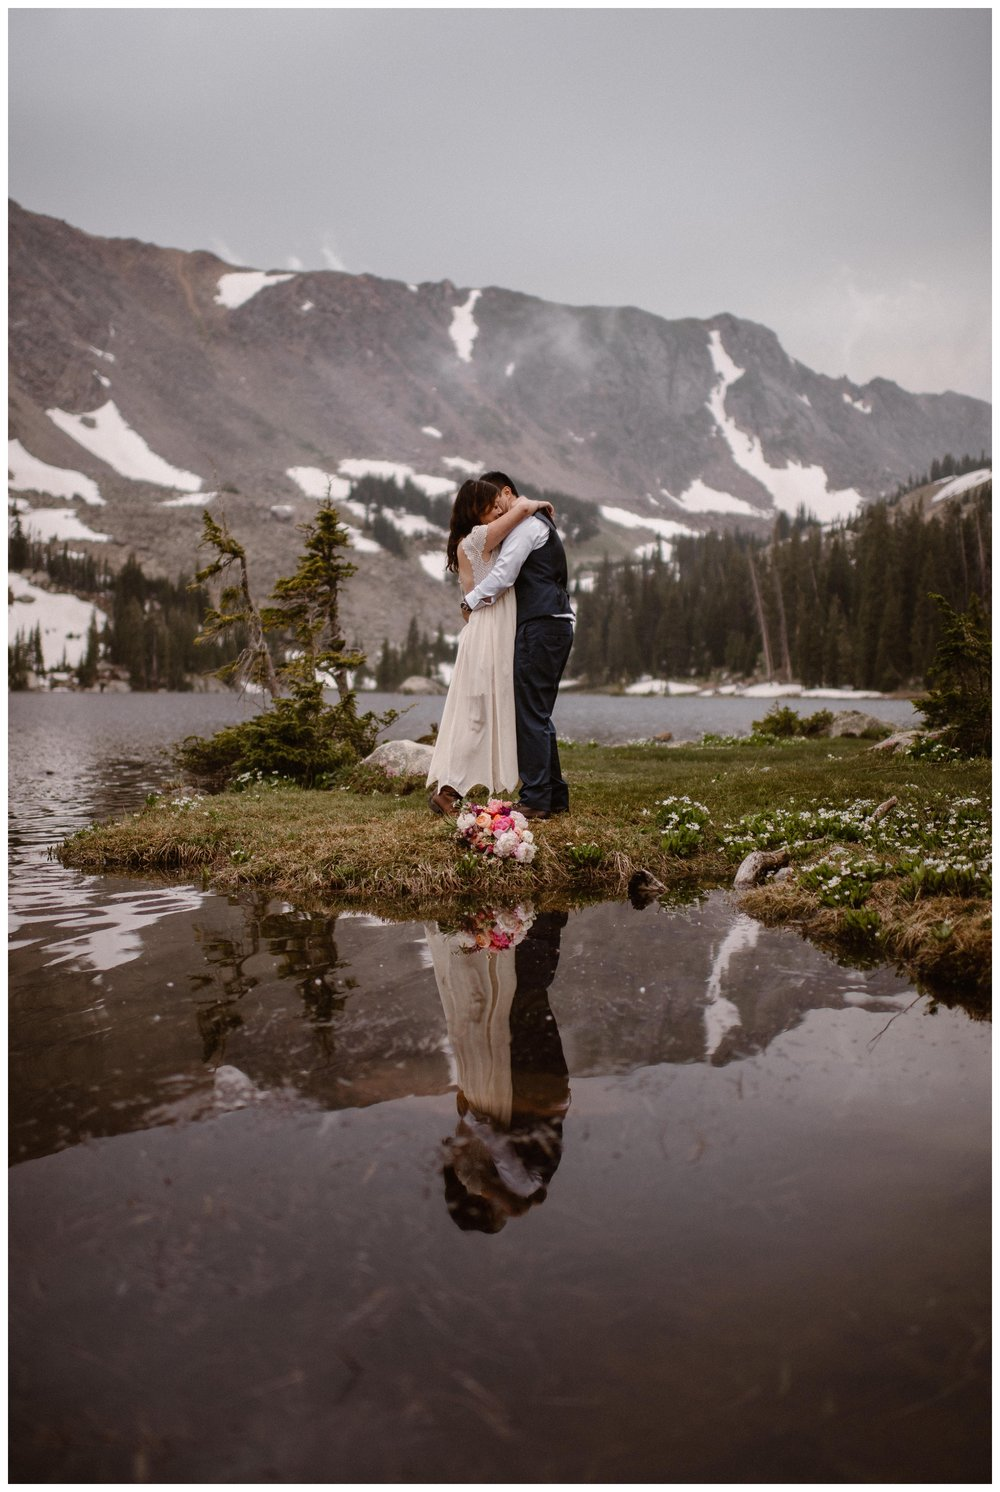 Leslie and Jinson share their first kiss following their self solemnizing elopement ceremony outside Gem Lake near Estes Park, Colorado. Photo by Maddie Mae Photo, Adventure Instead.